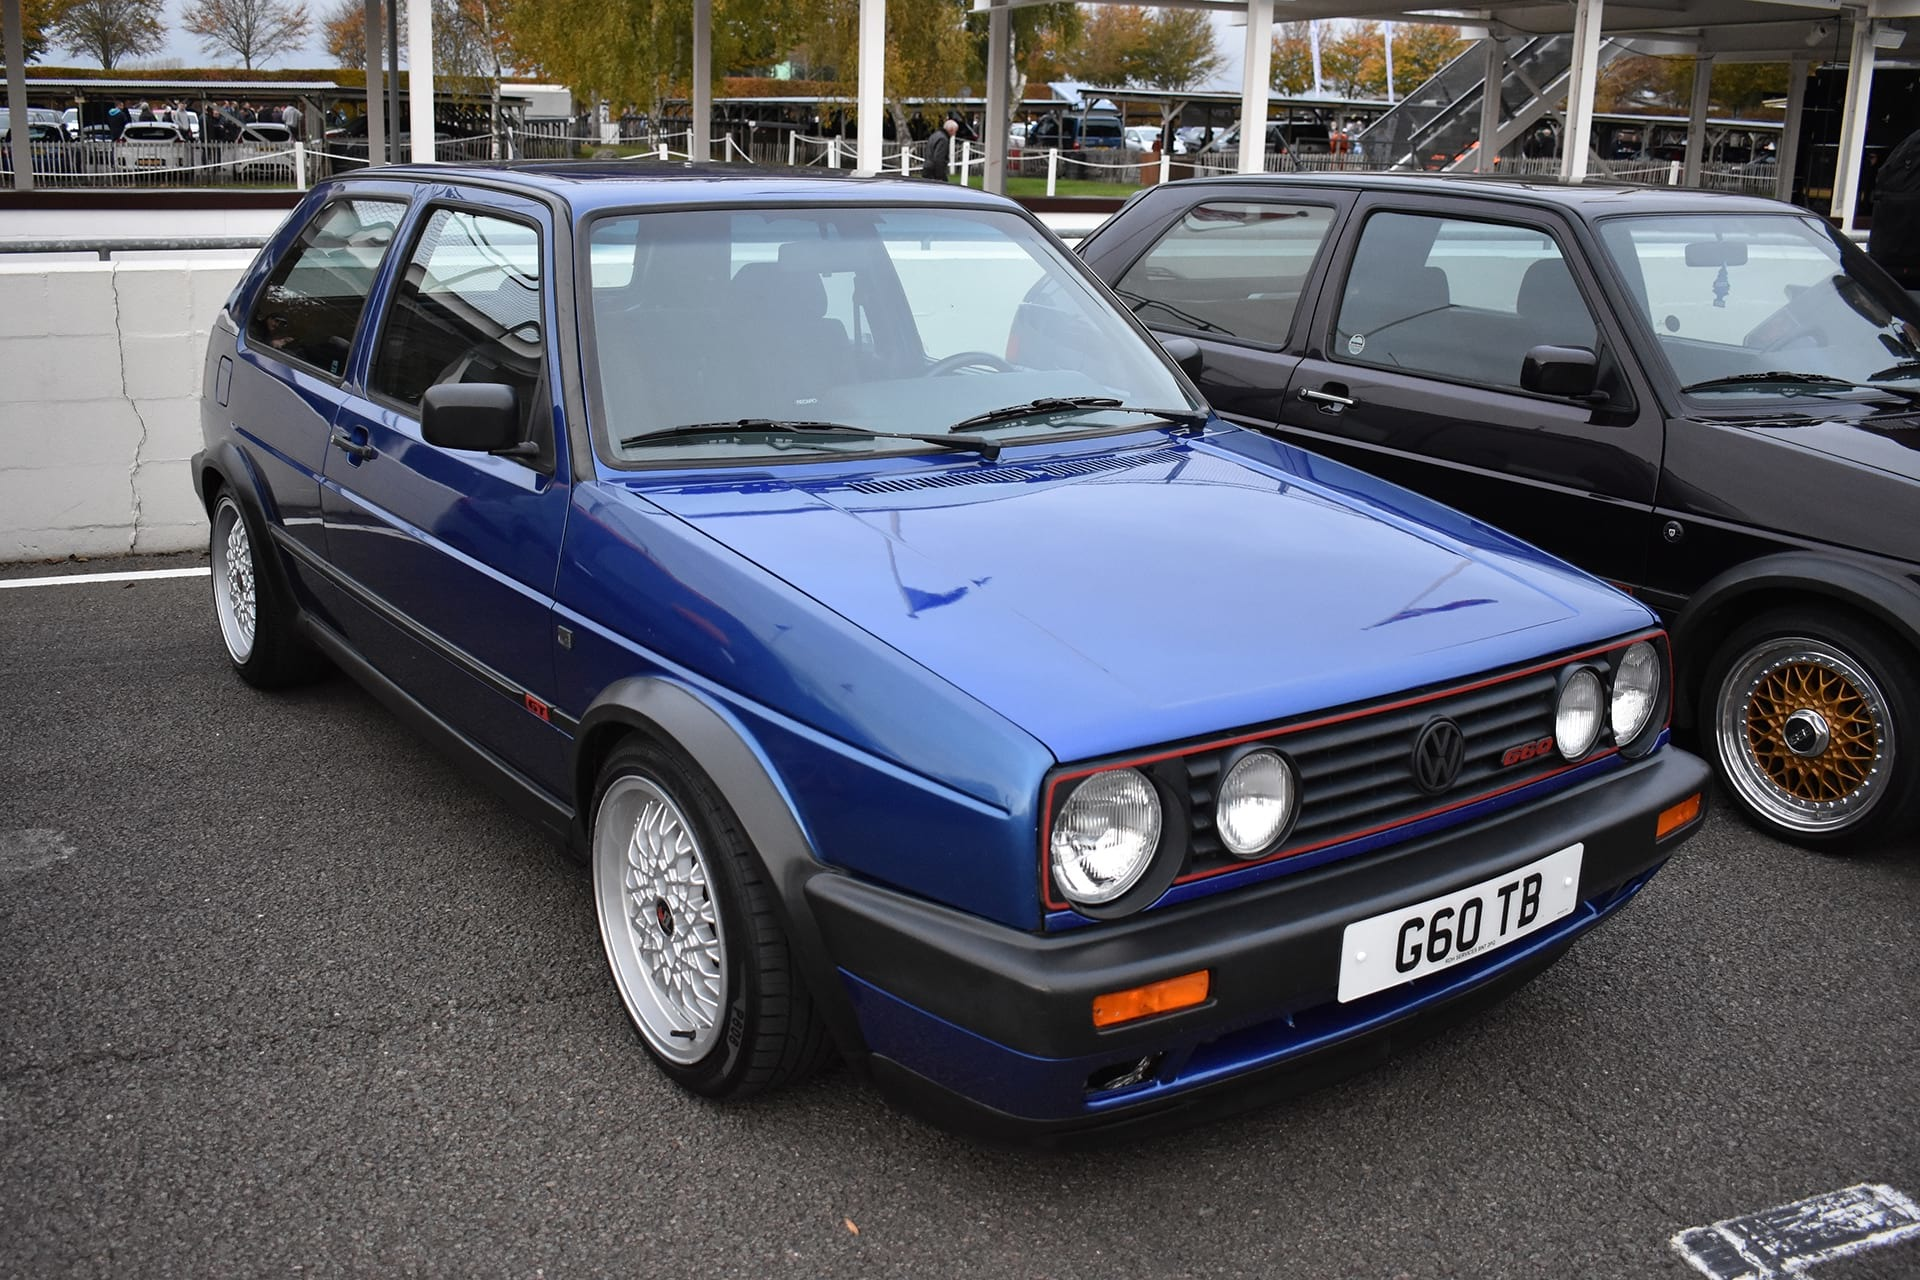 GBC-HH-golf-GTI-car-4.jpg#asset:4403